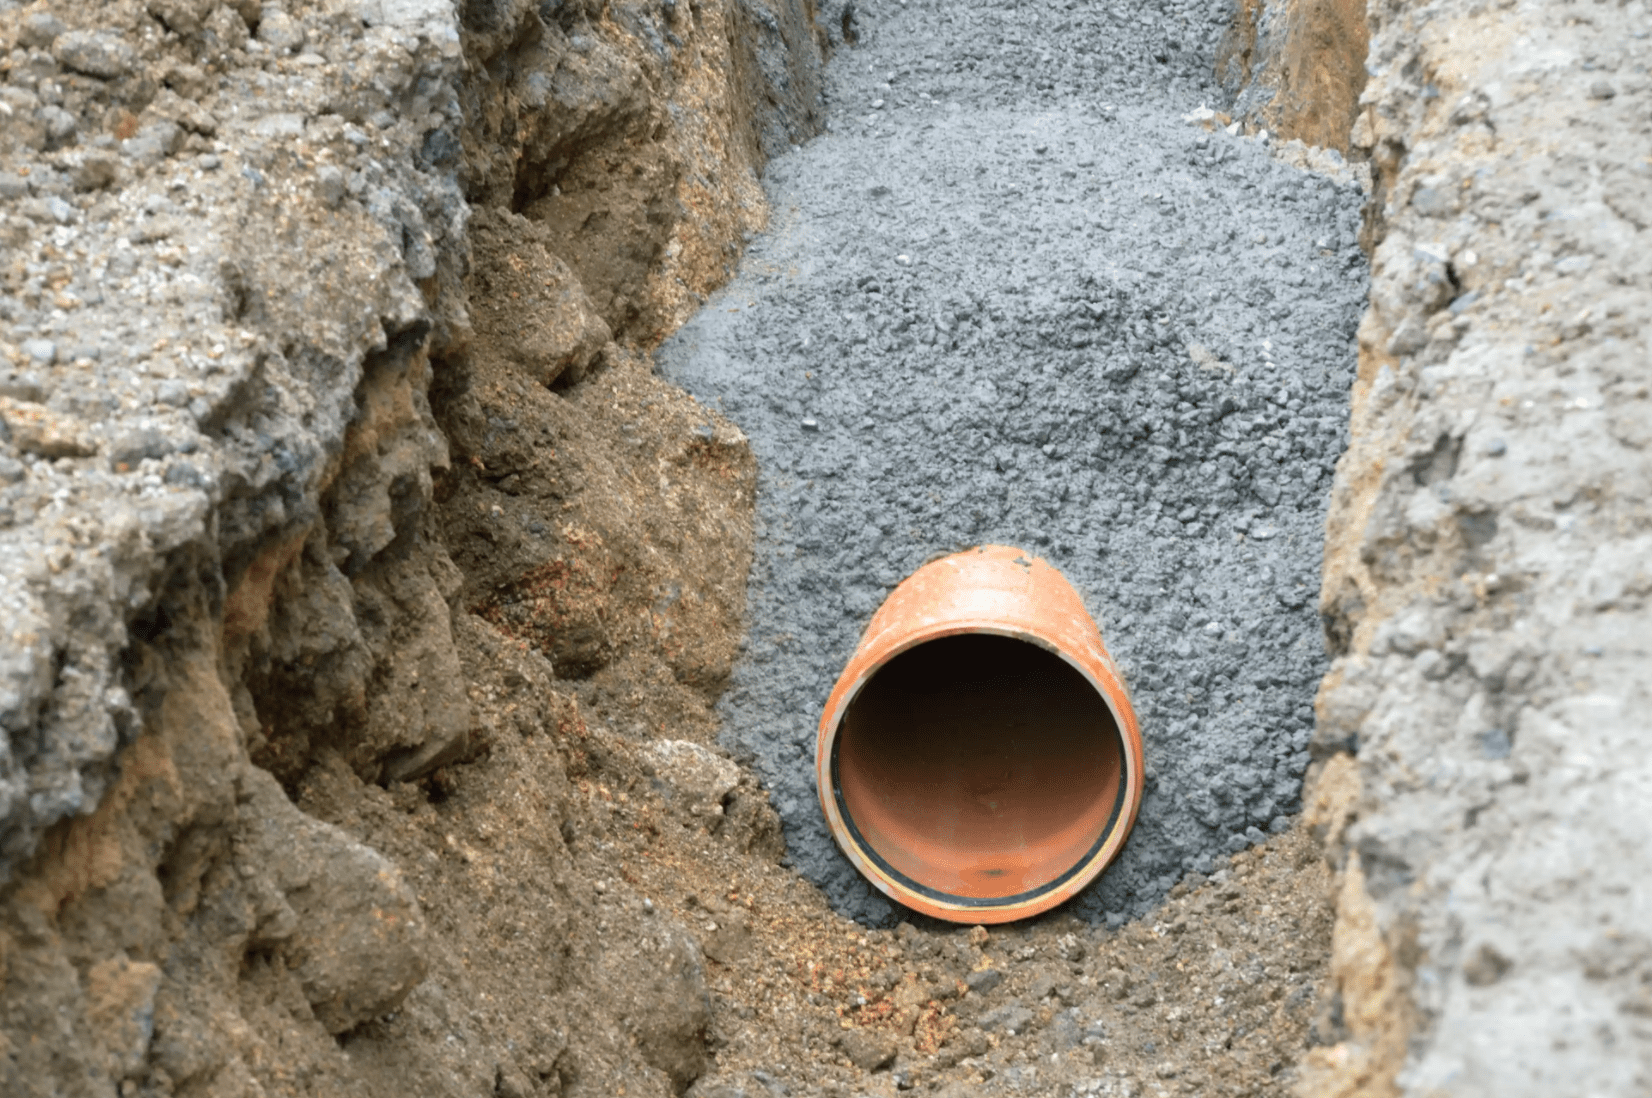 Guide To Sewer Pipes Pvc Abs Clay Iron, How To Tile Around A Waste Pipe Look Like